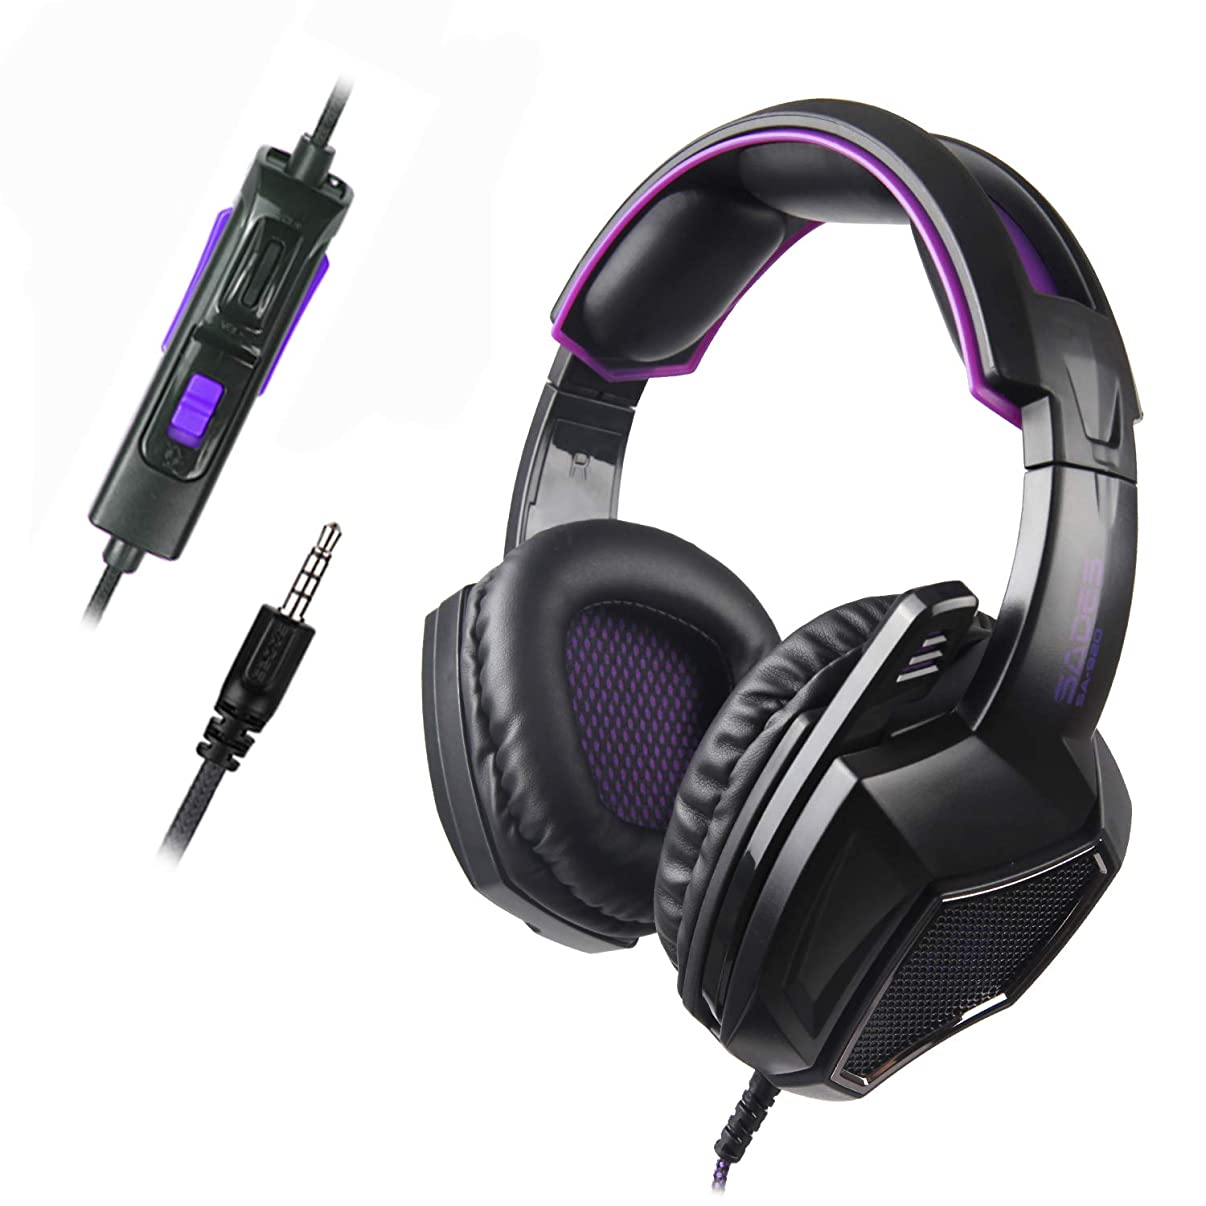 Sades SA920 3.5mm Wired Over Ear Stereo Bass Gaming Headphone Headset with Microphone for New Box one/ PS4/ PC/iOS/Computer/Smart Phones/Mobiles/Laptop/Mac /(Black Purple)